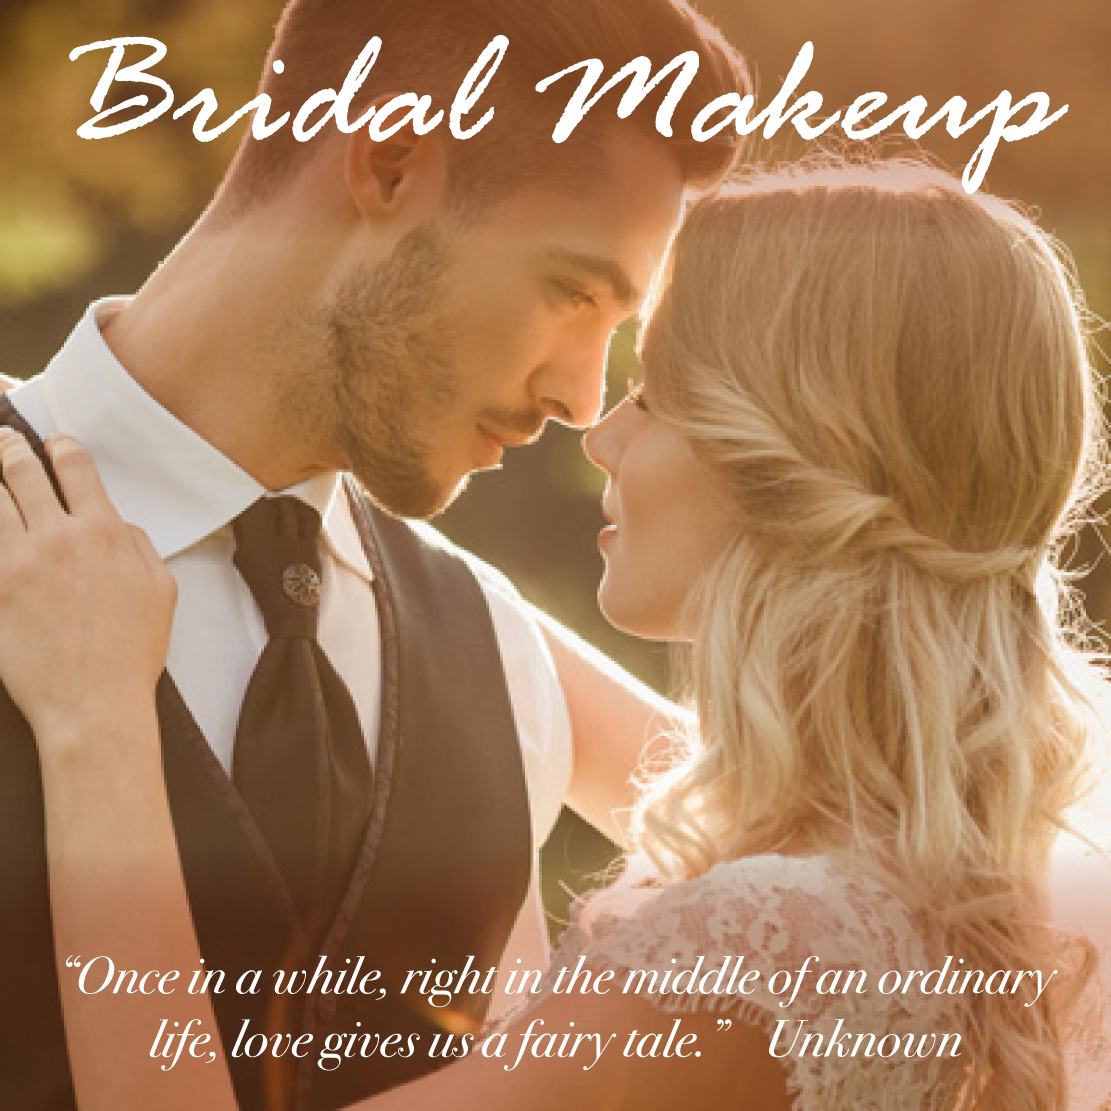 bridal makeup prices - christiane dowling